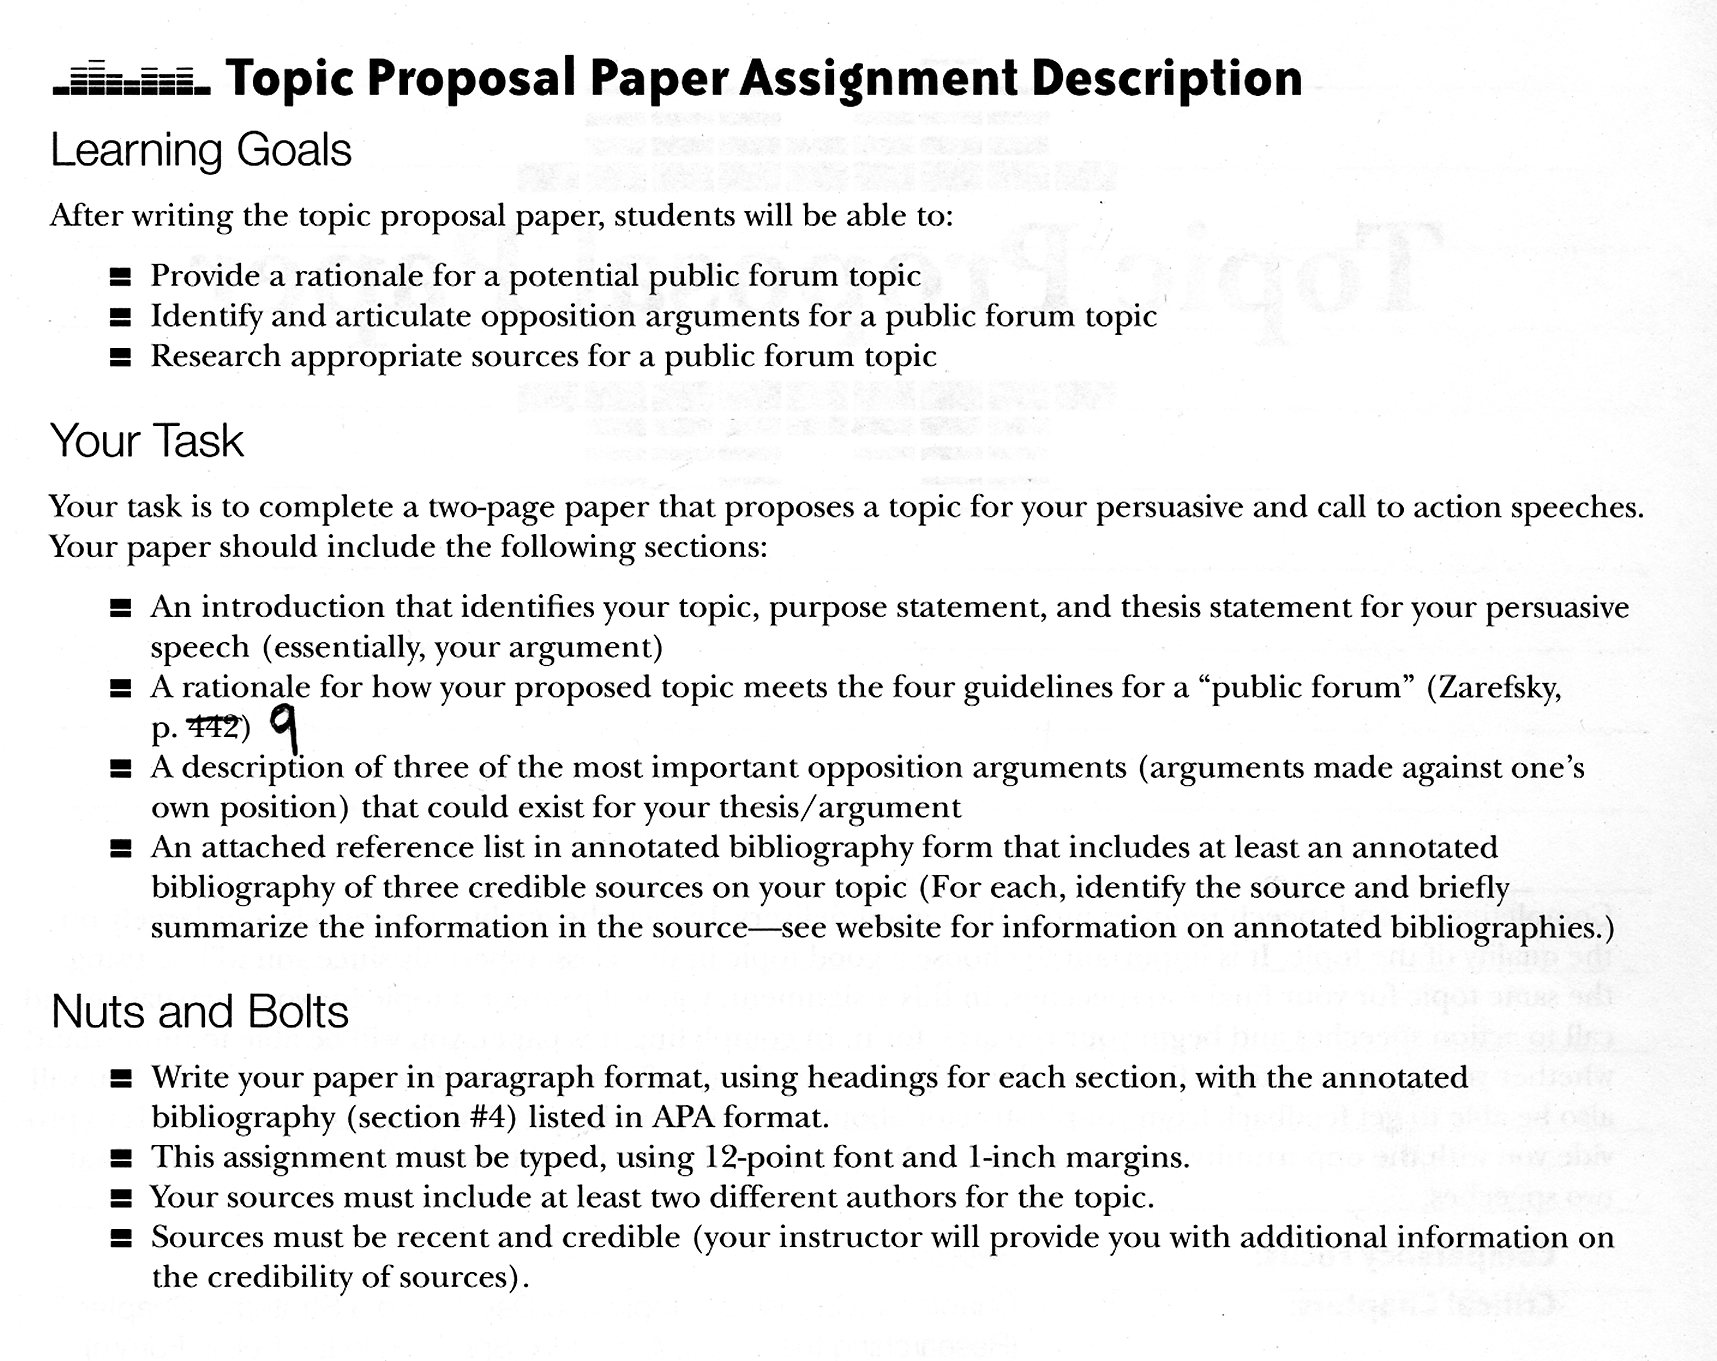 Essay About Mother Topics For A Proposal Essay Research Proposal Essay Topics Help Proposal  Essay Topics Crucible Essay Proposal Essay Corporal Punishment also Woman Rights Essay Crucible Essay Topics Topics For A Proposal Essay Research Proposal  Essay On Natural Disasters